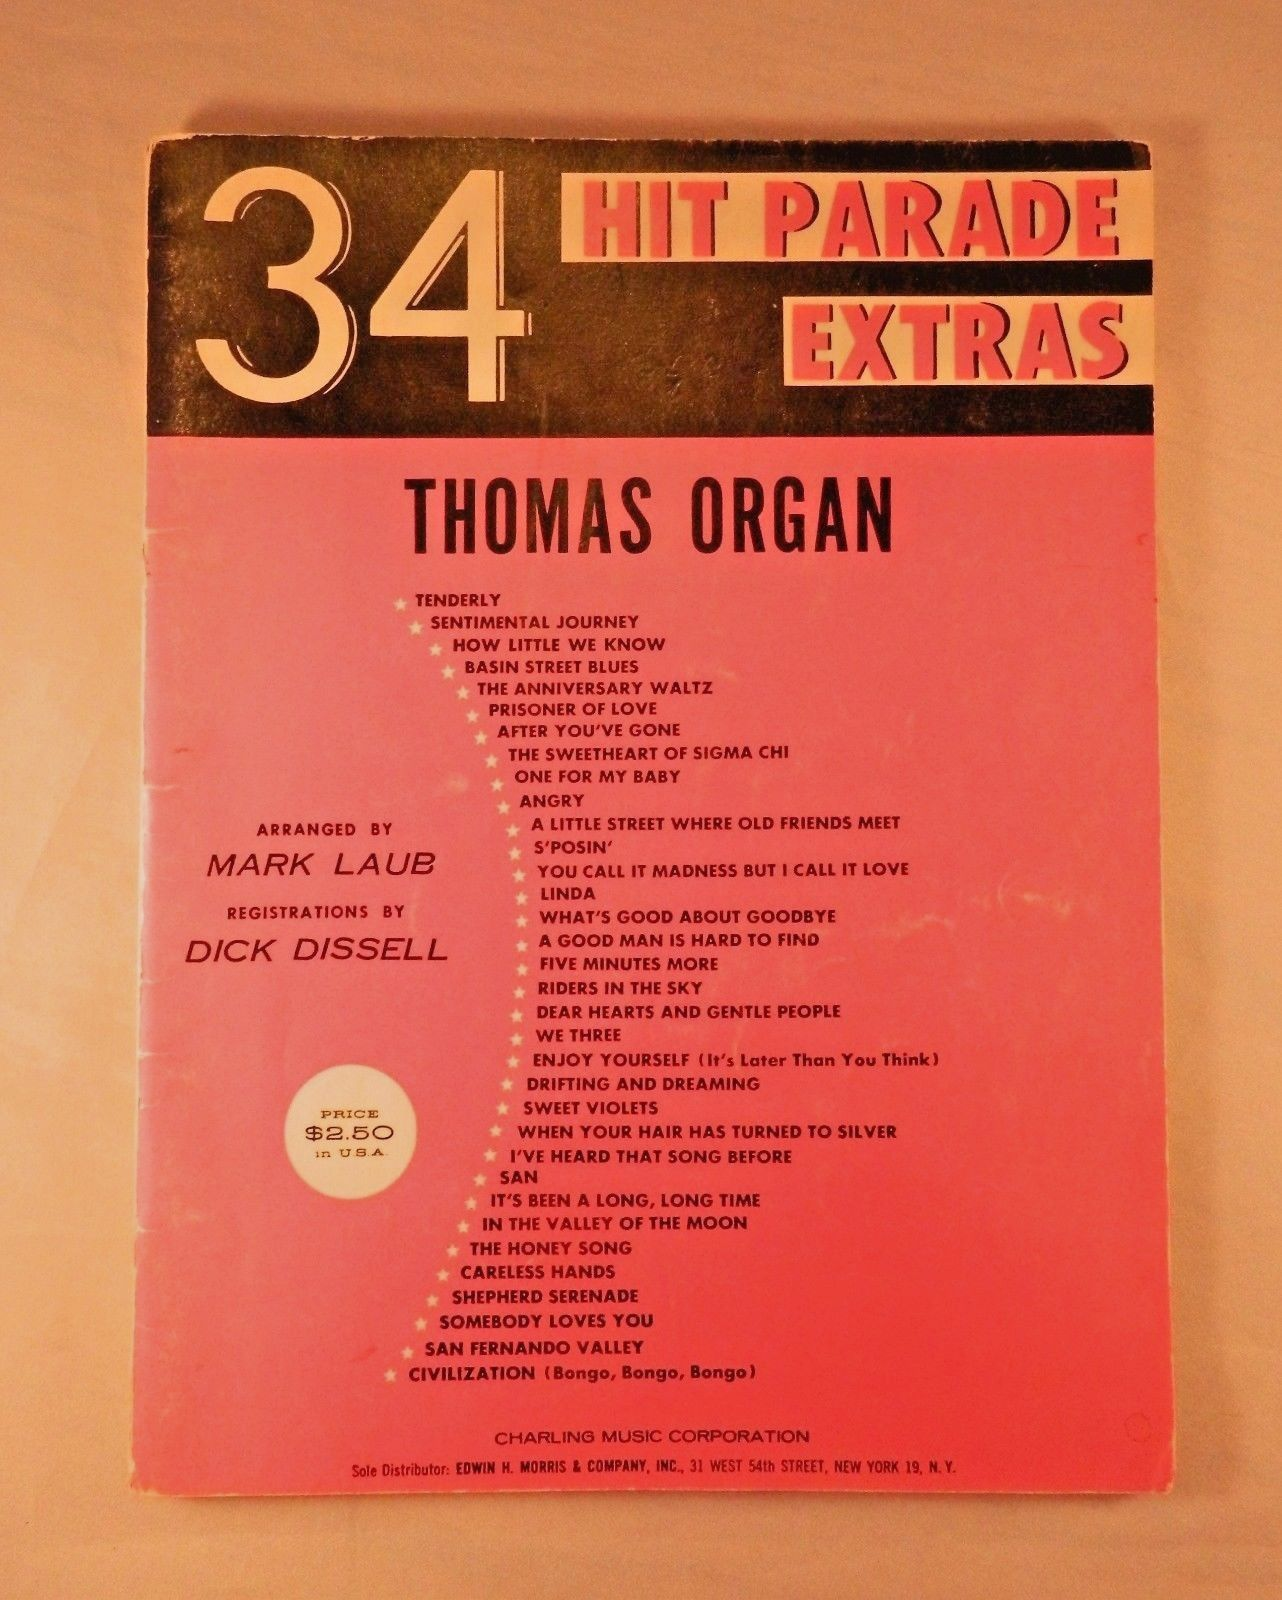 Hit Parade Extras 34 Songs for Thomas Organ Music Book Vintage 1963 1st Printing